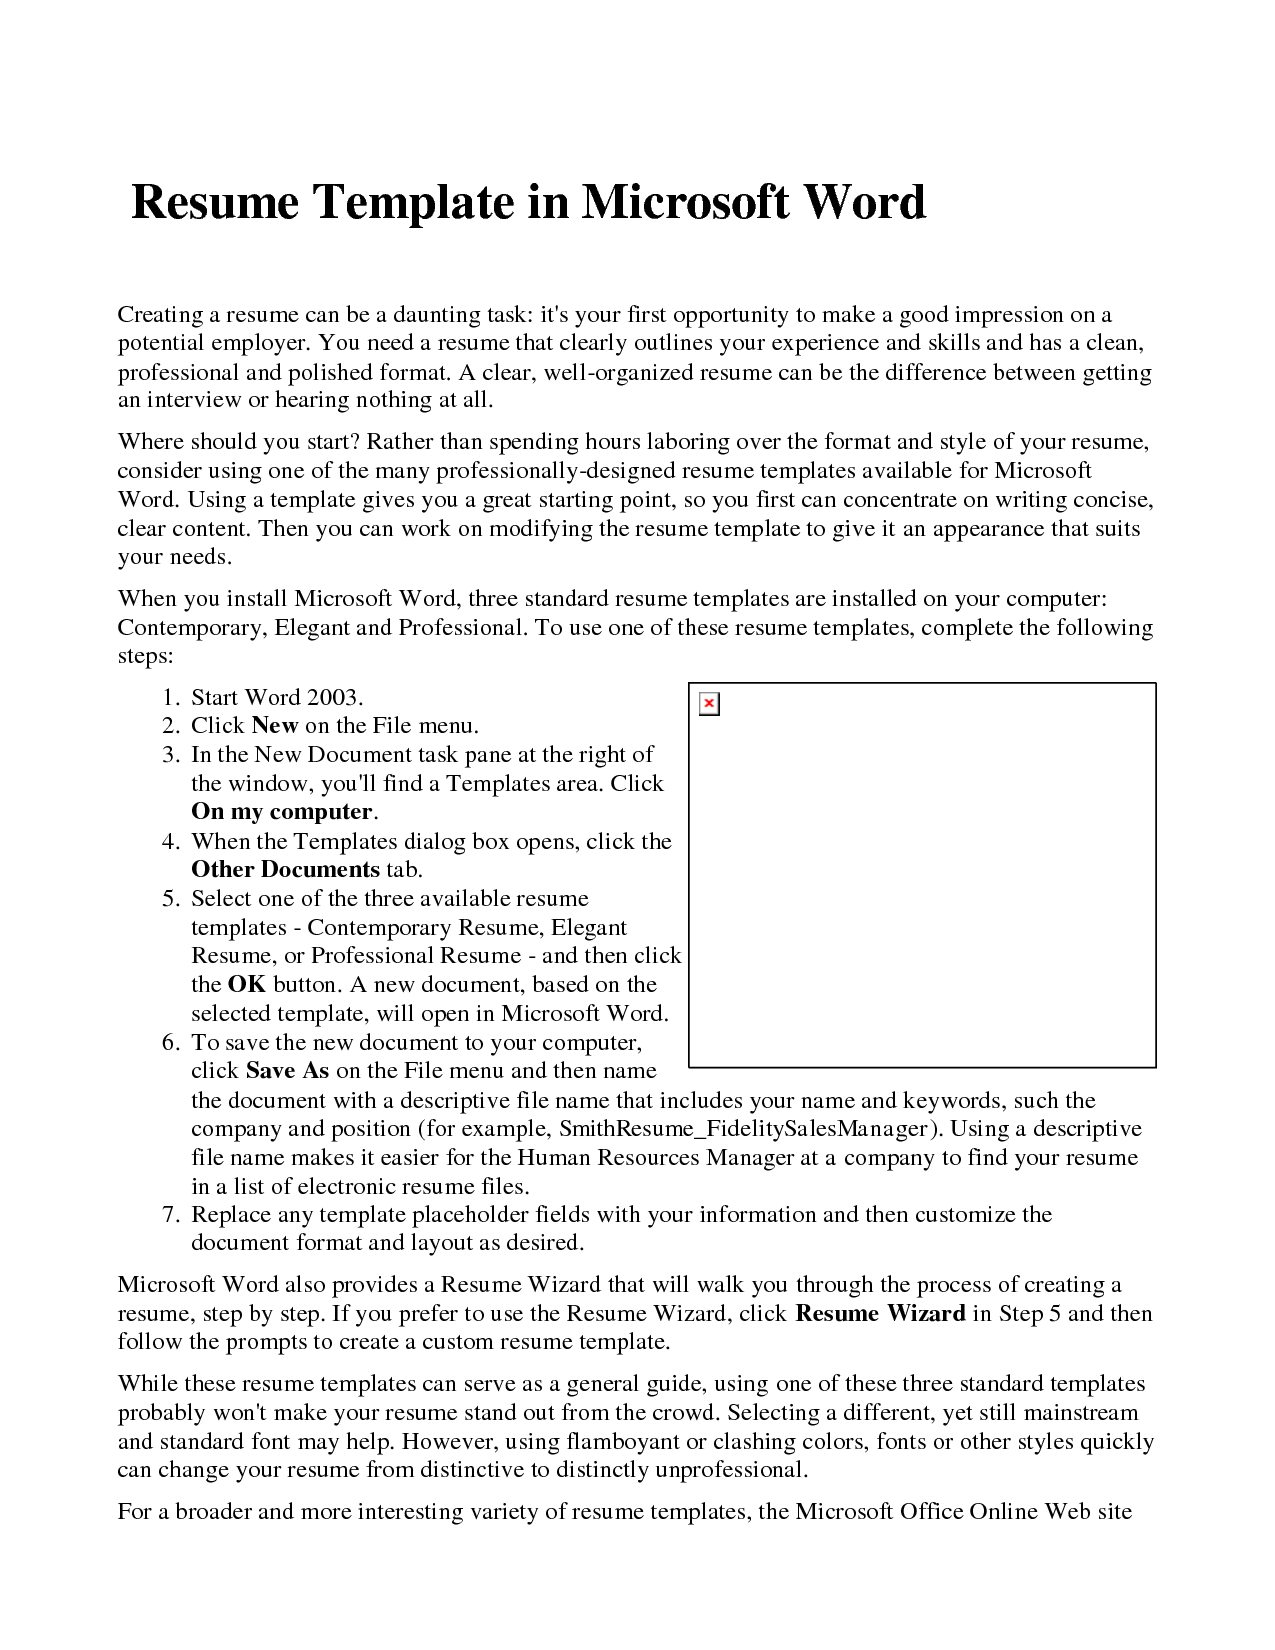 Free Resume Templates For Microsoft Word Resume Templates Microsoft Word  Httpwwwresumecareer